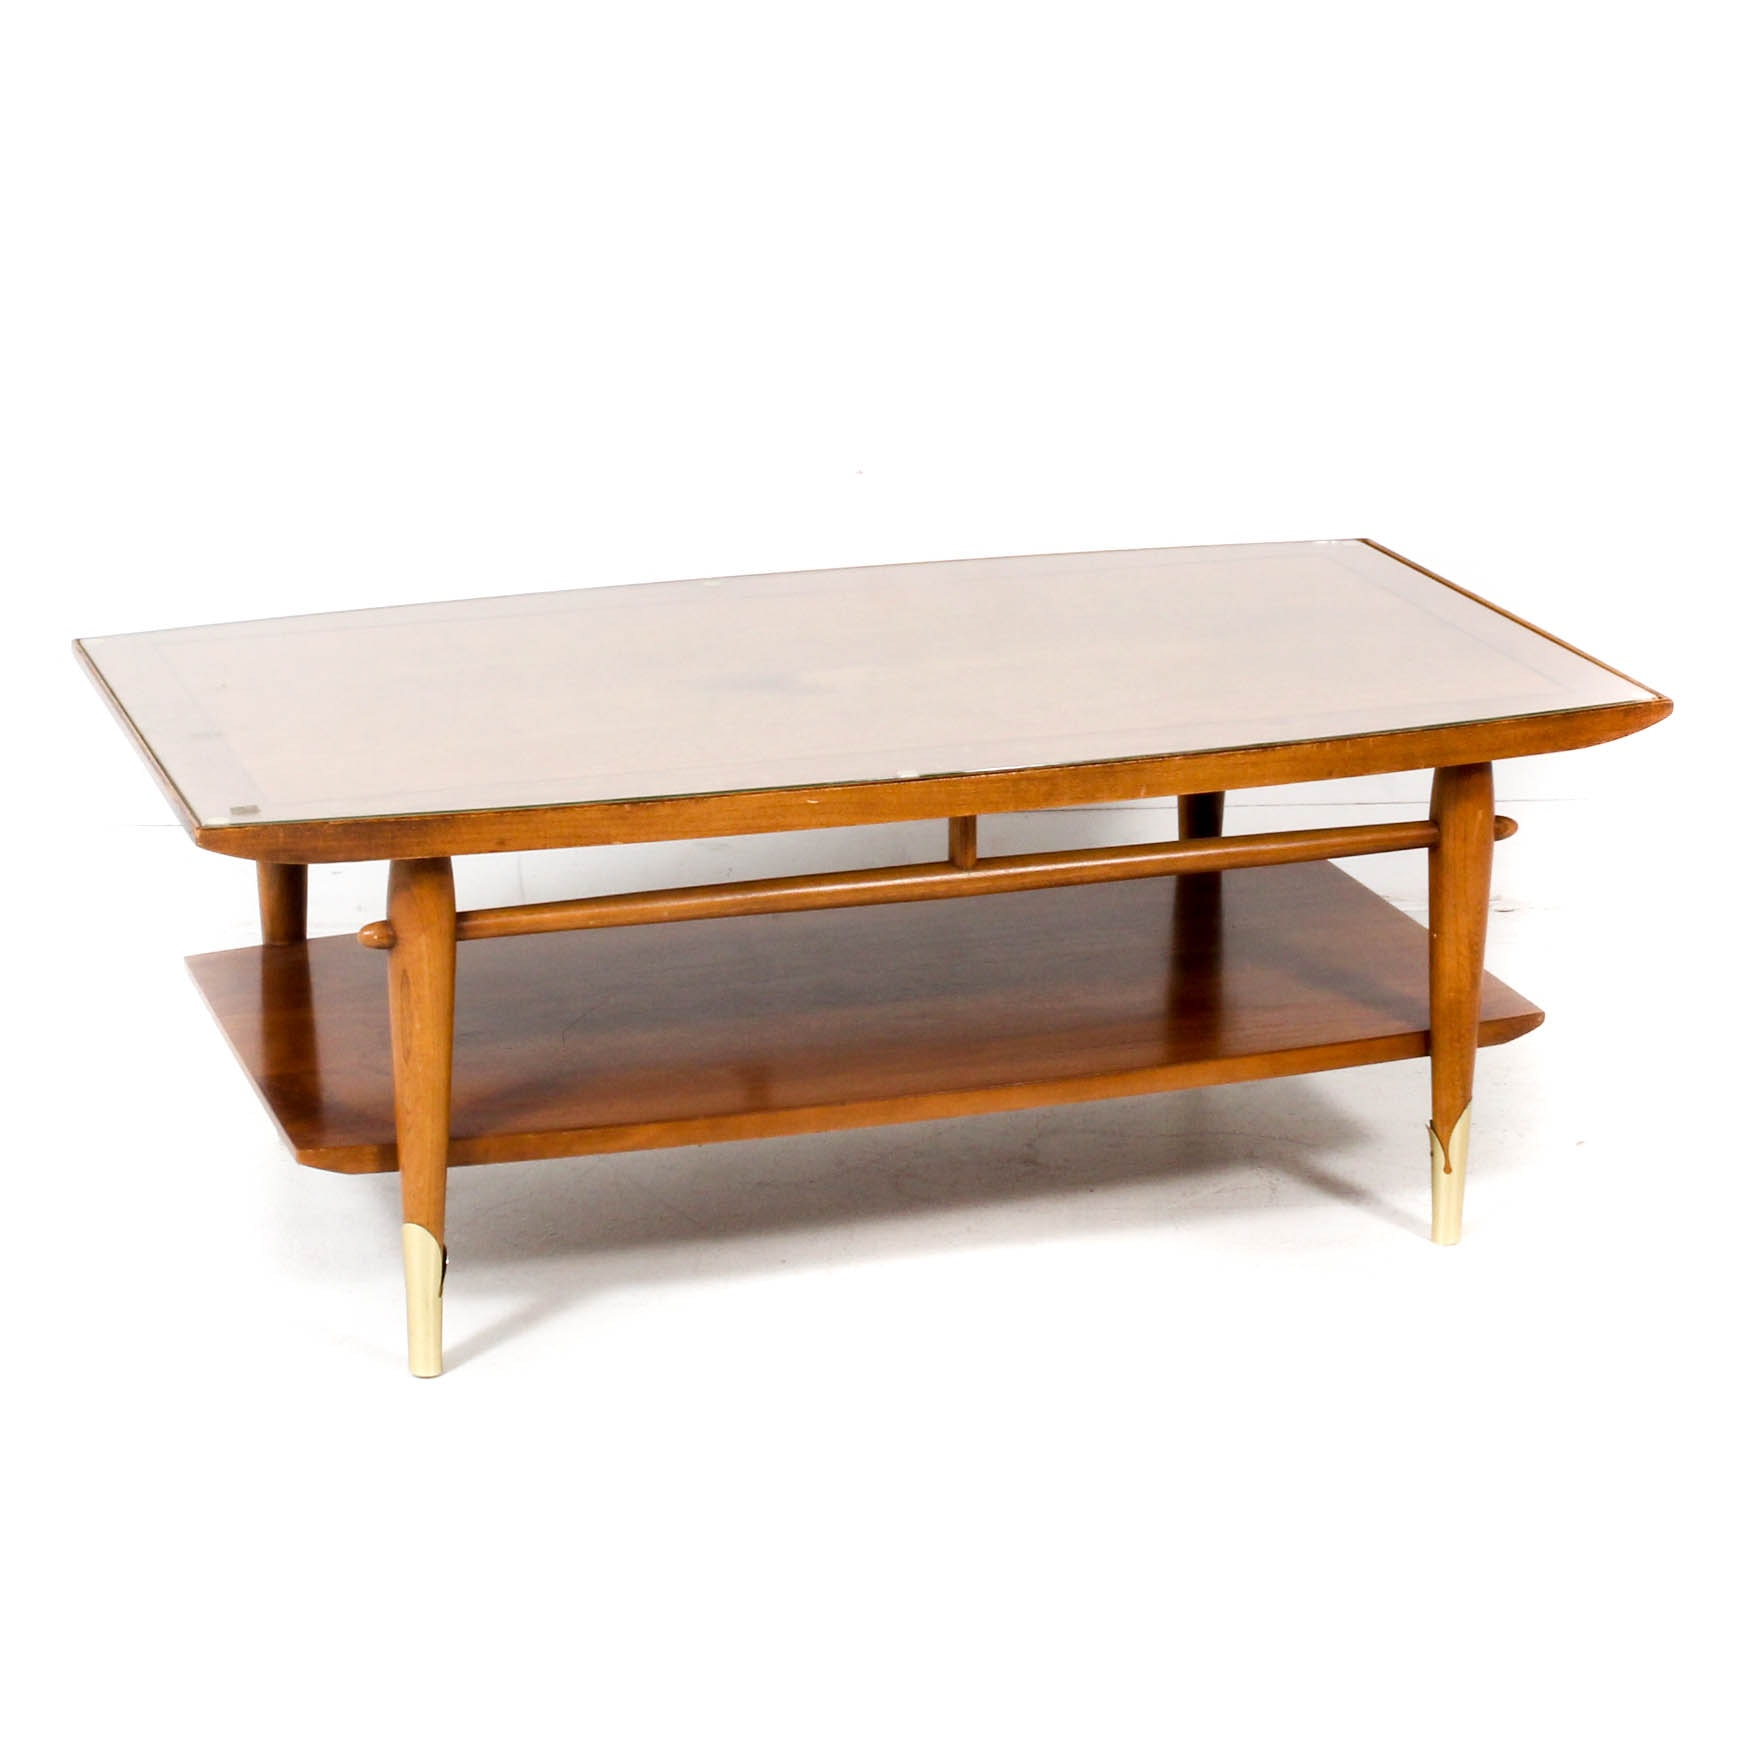 Lane Copenhagen Walnut Coffee Table, Mid Century Modern